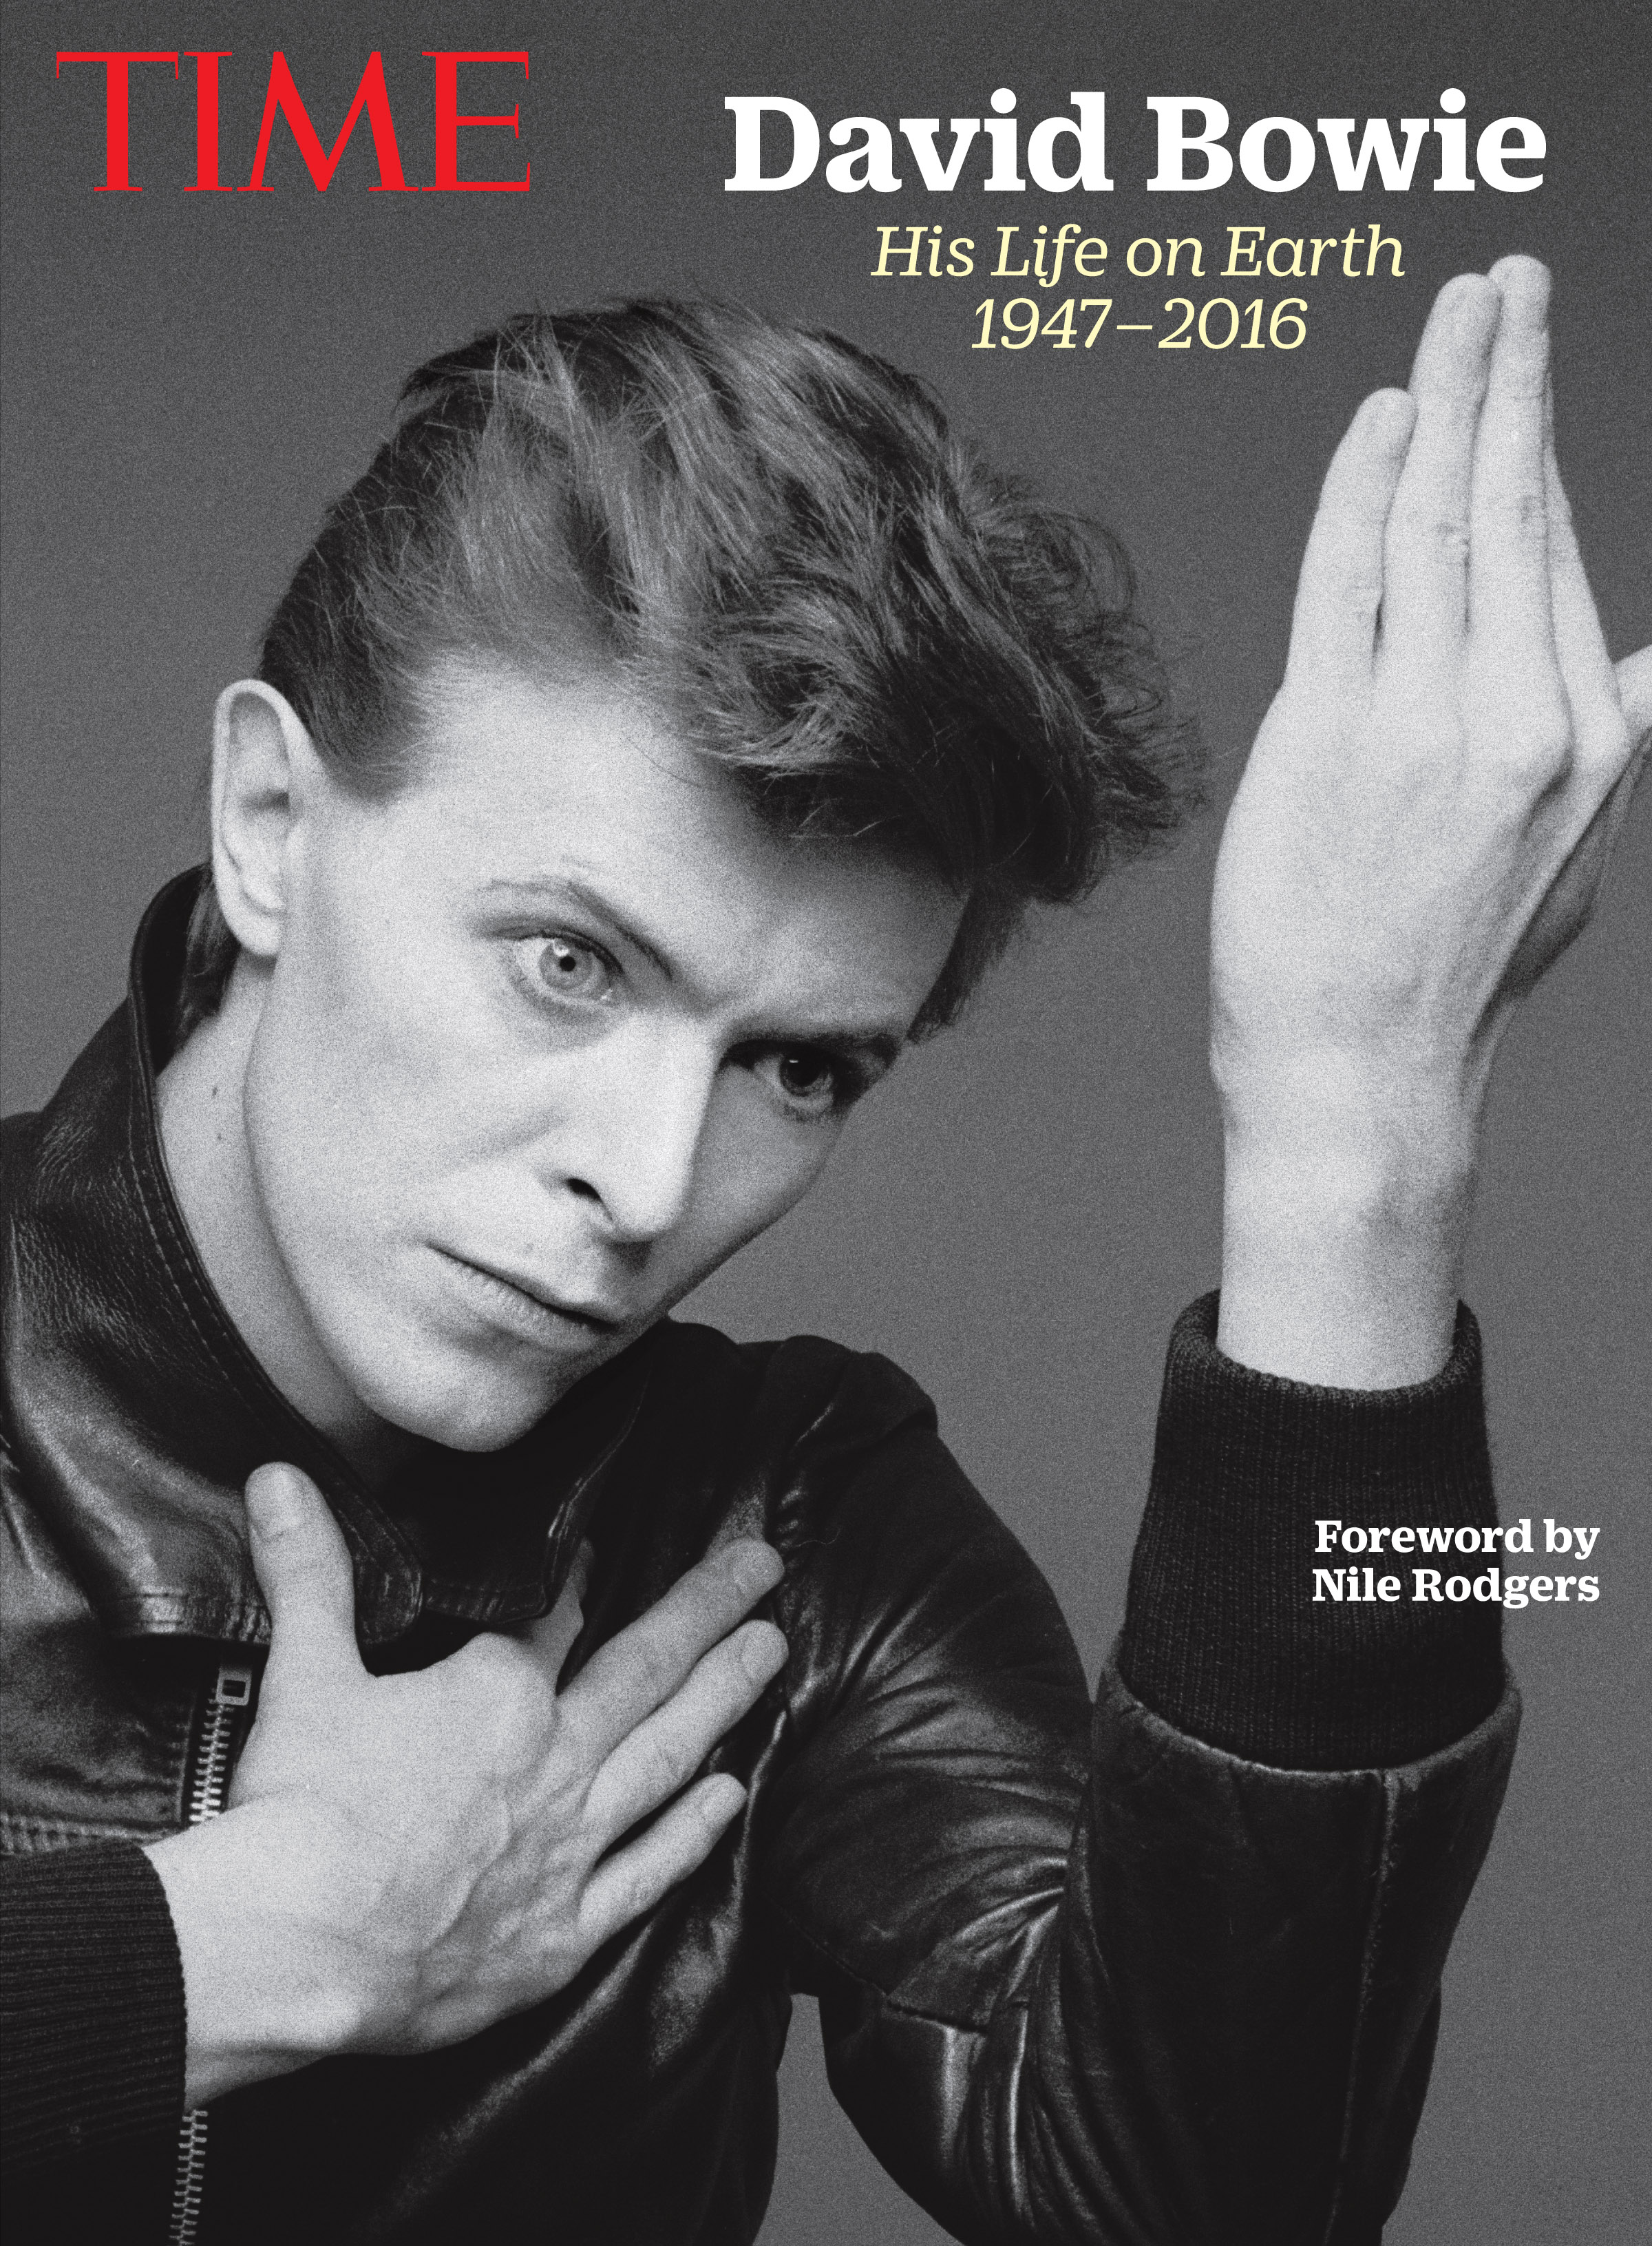 David Bowie: His Life on Earth.